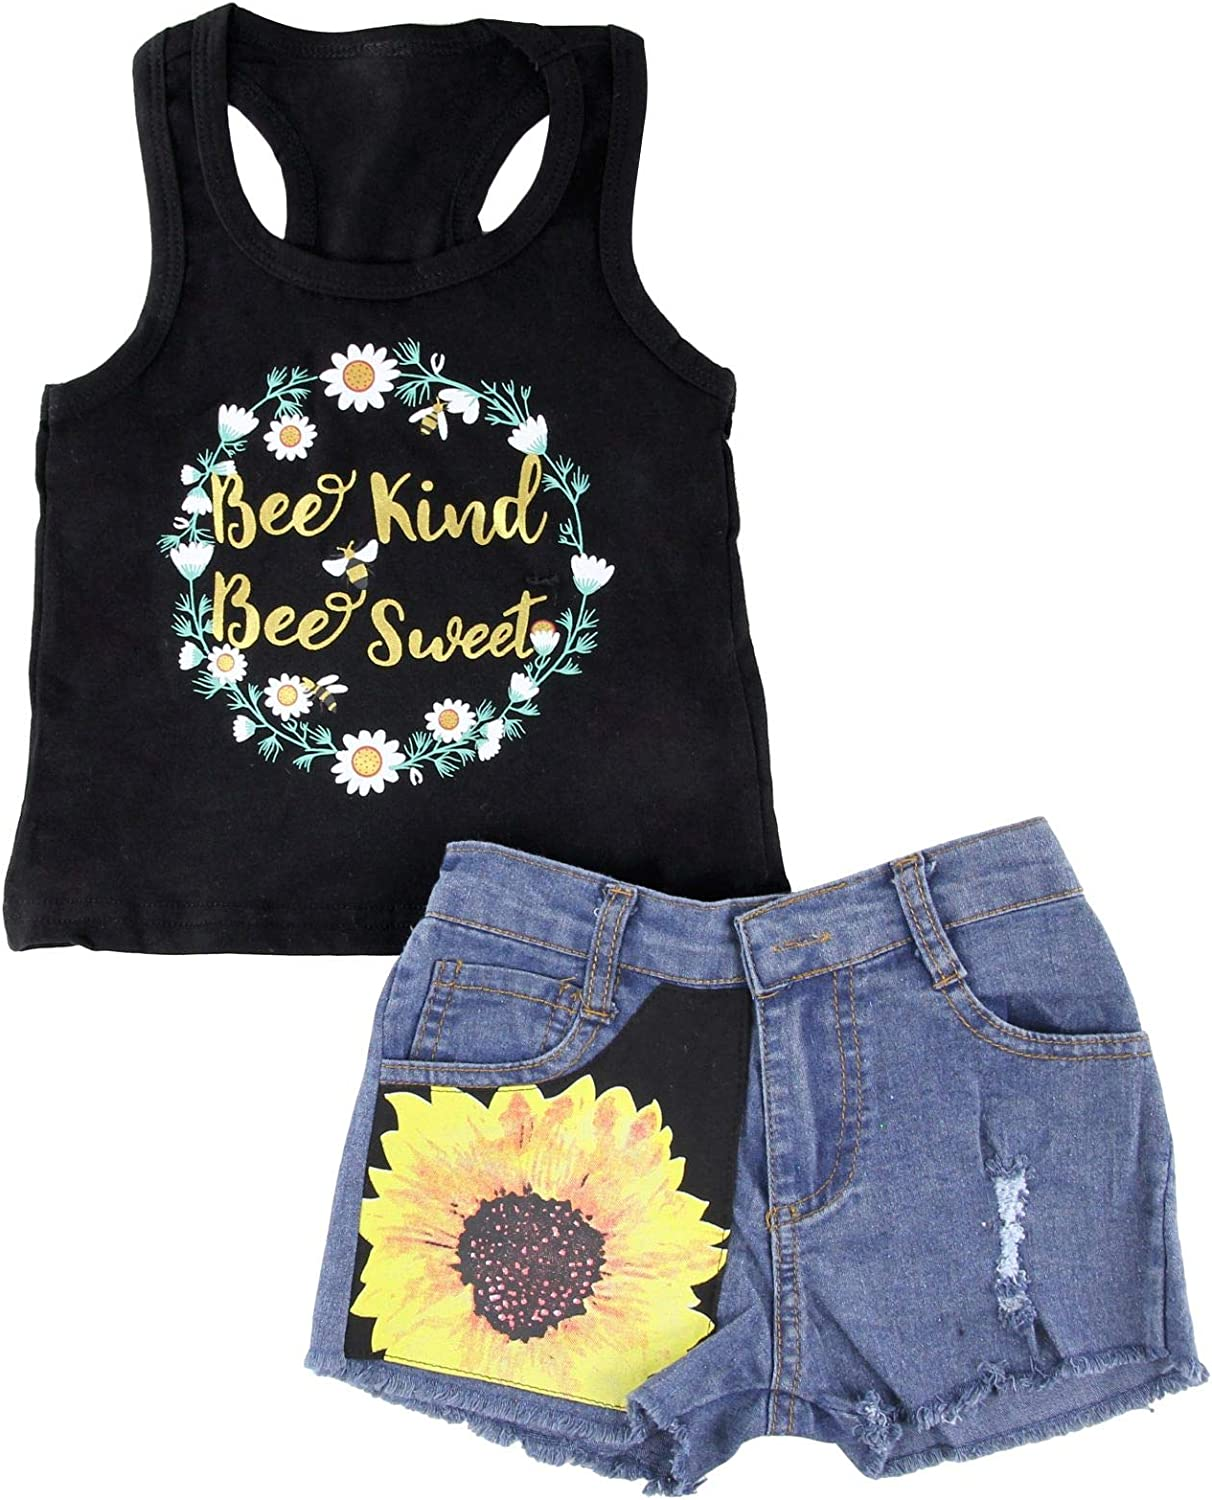 2PCS Toddler Kids Baby Girls Clothes Sunflower T-shirt Tops+Pants Outfits Sets